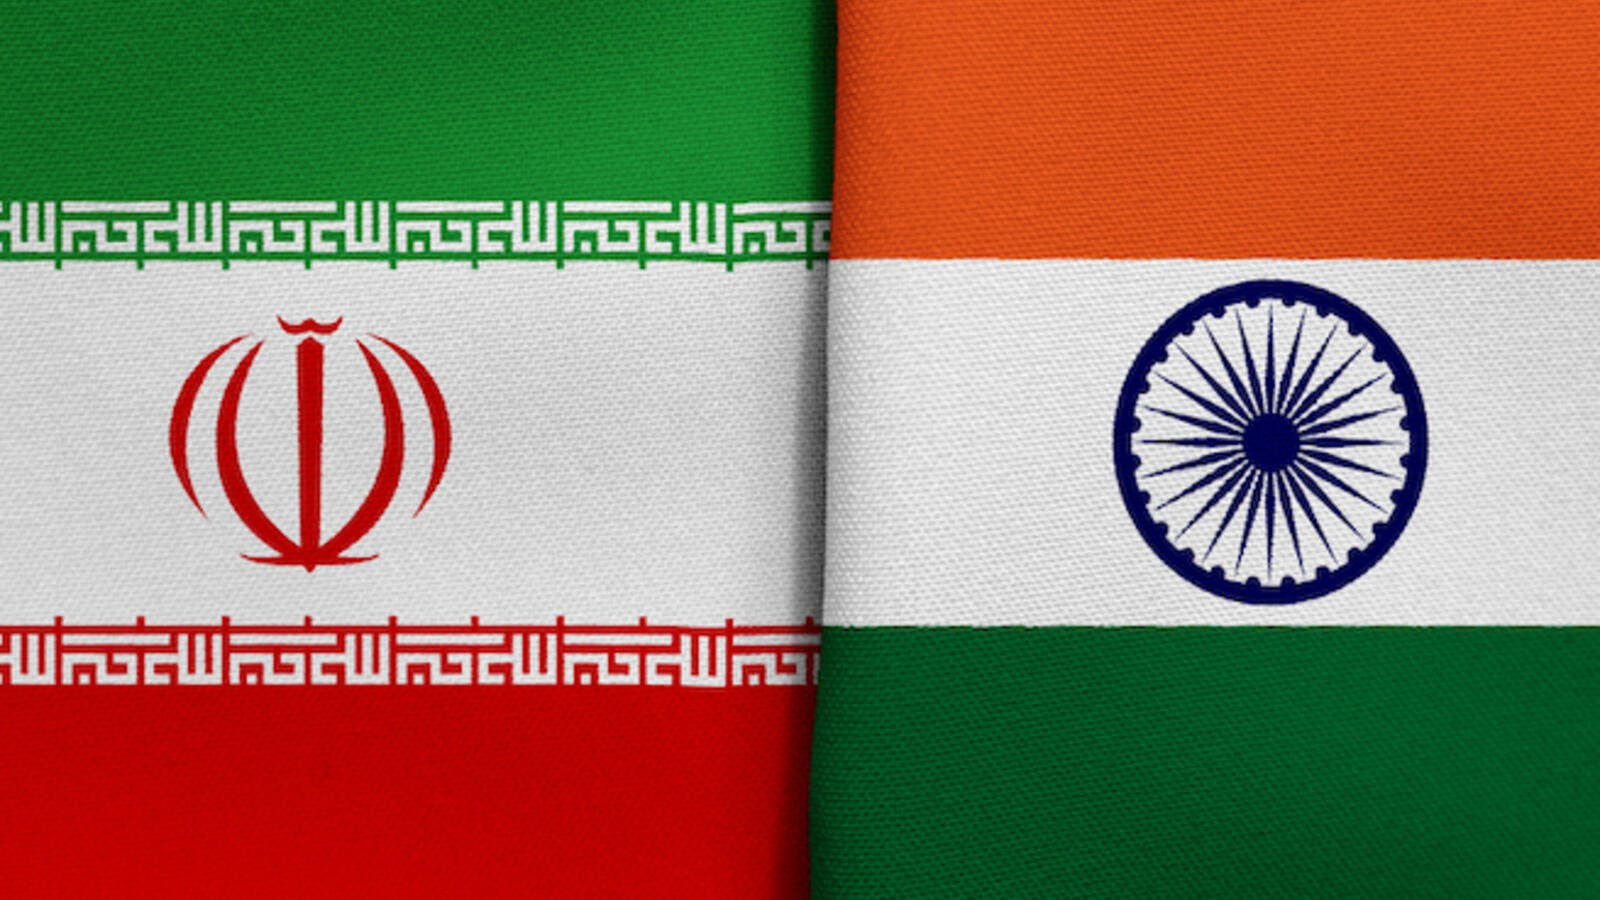 US will continue to negotiate with India and the seven other countries receiving the six-month exemption to get them to cut their Iranian imports to zero. Since the reimposition of sanctions were announced, India has been cutting back on the Iranian imports. (Shutterstock)